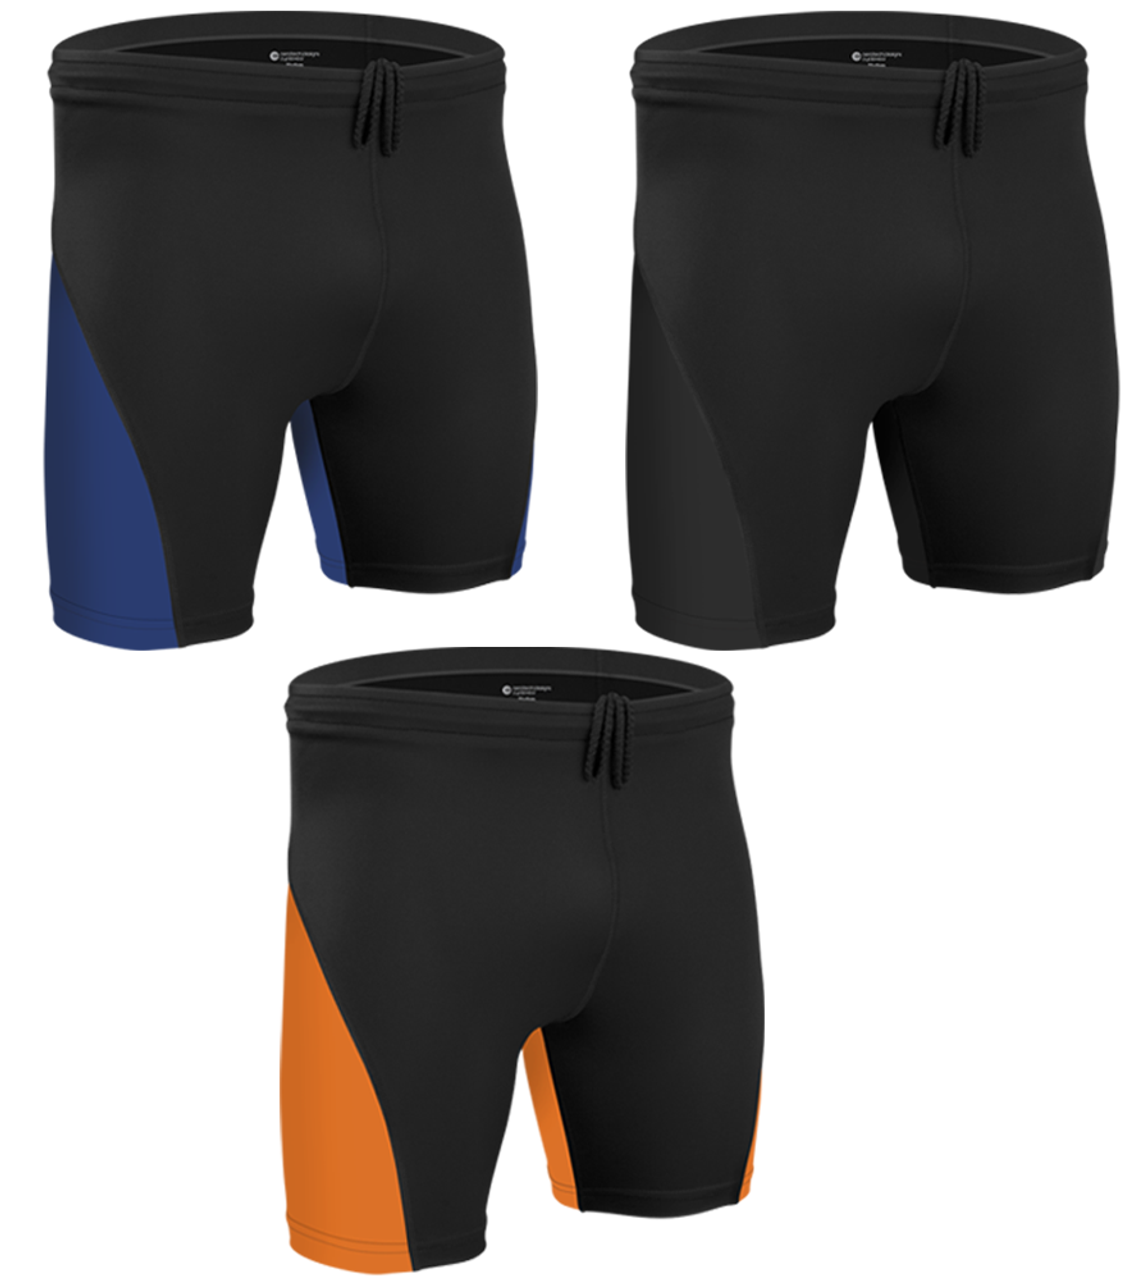 More Mile Active 9 Inch Mens Running Shorts Black Exercise Training Sports Short